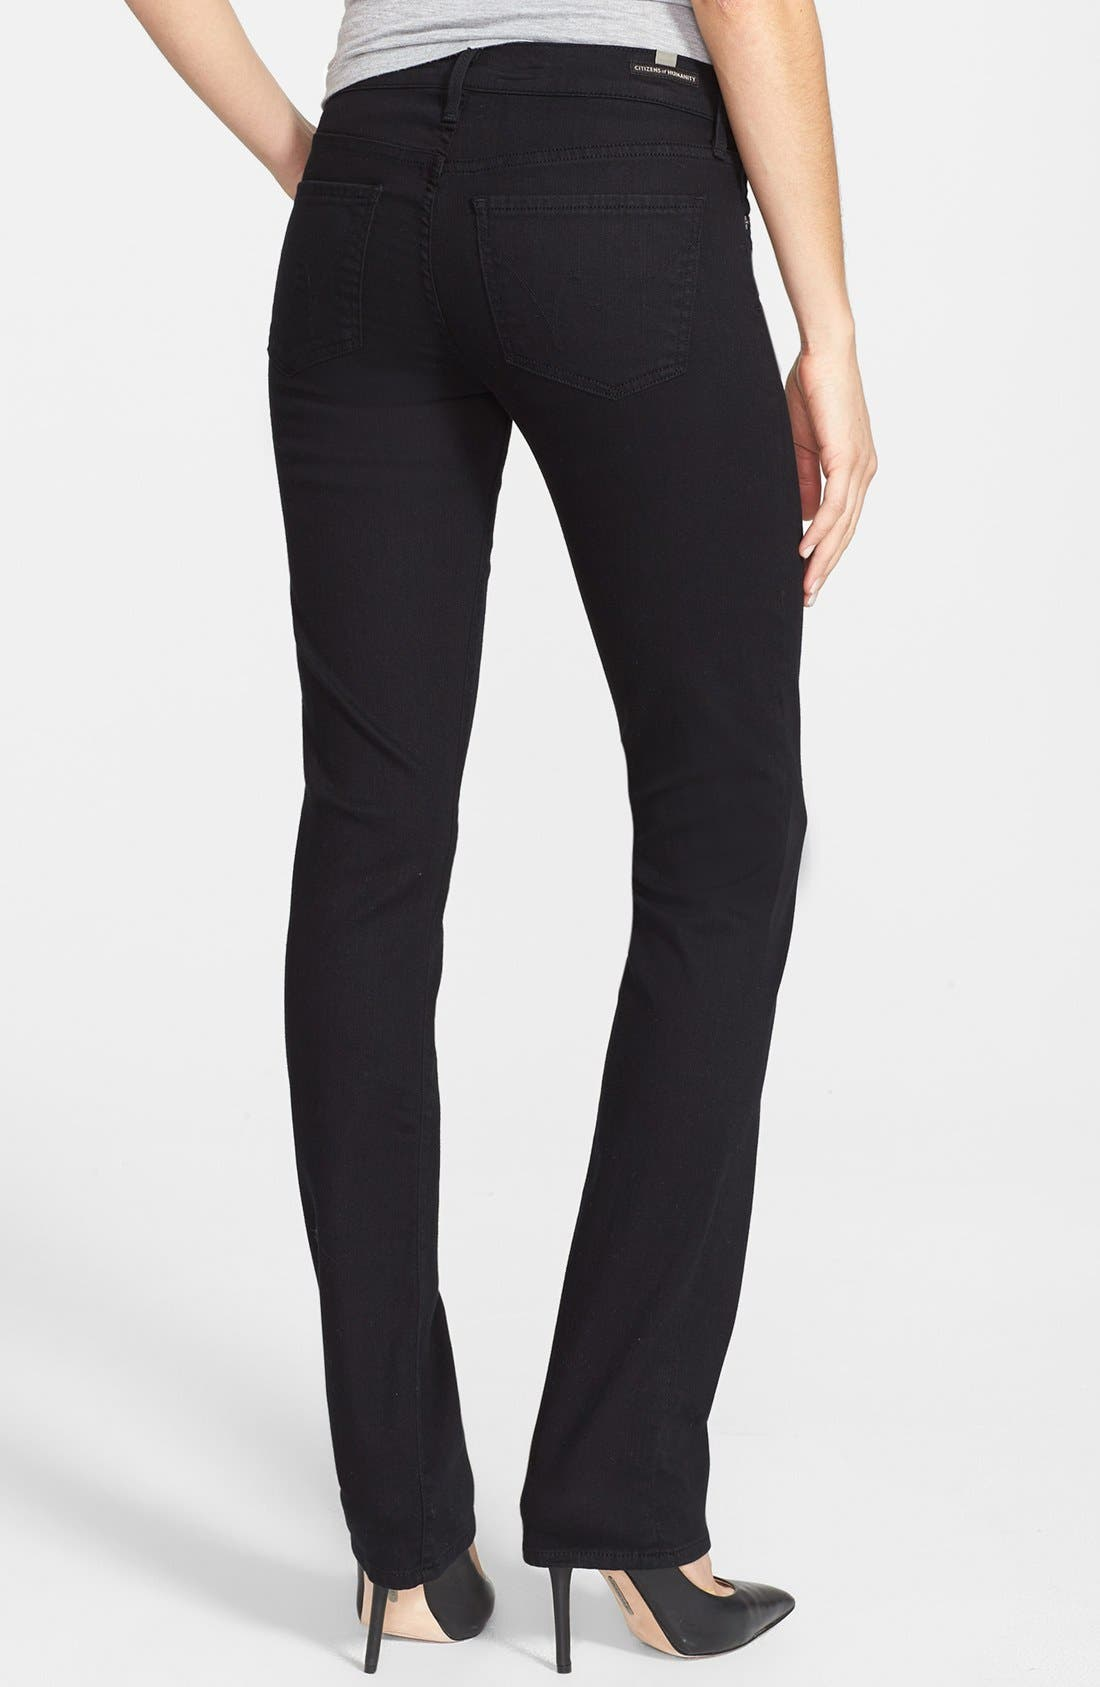 Alternate Image 2  - Citizens of Humanity 'Ava' Straight Leg Jeans (Black Diamond)